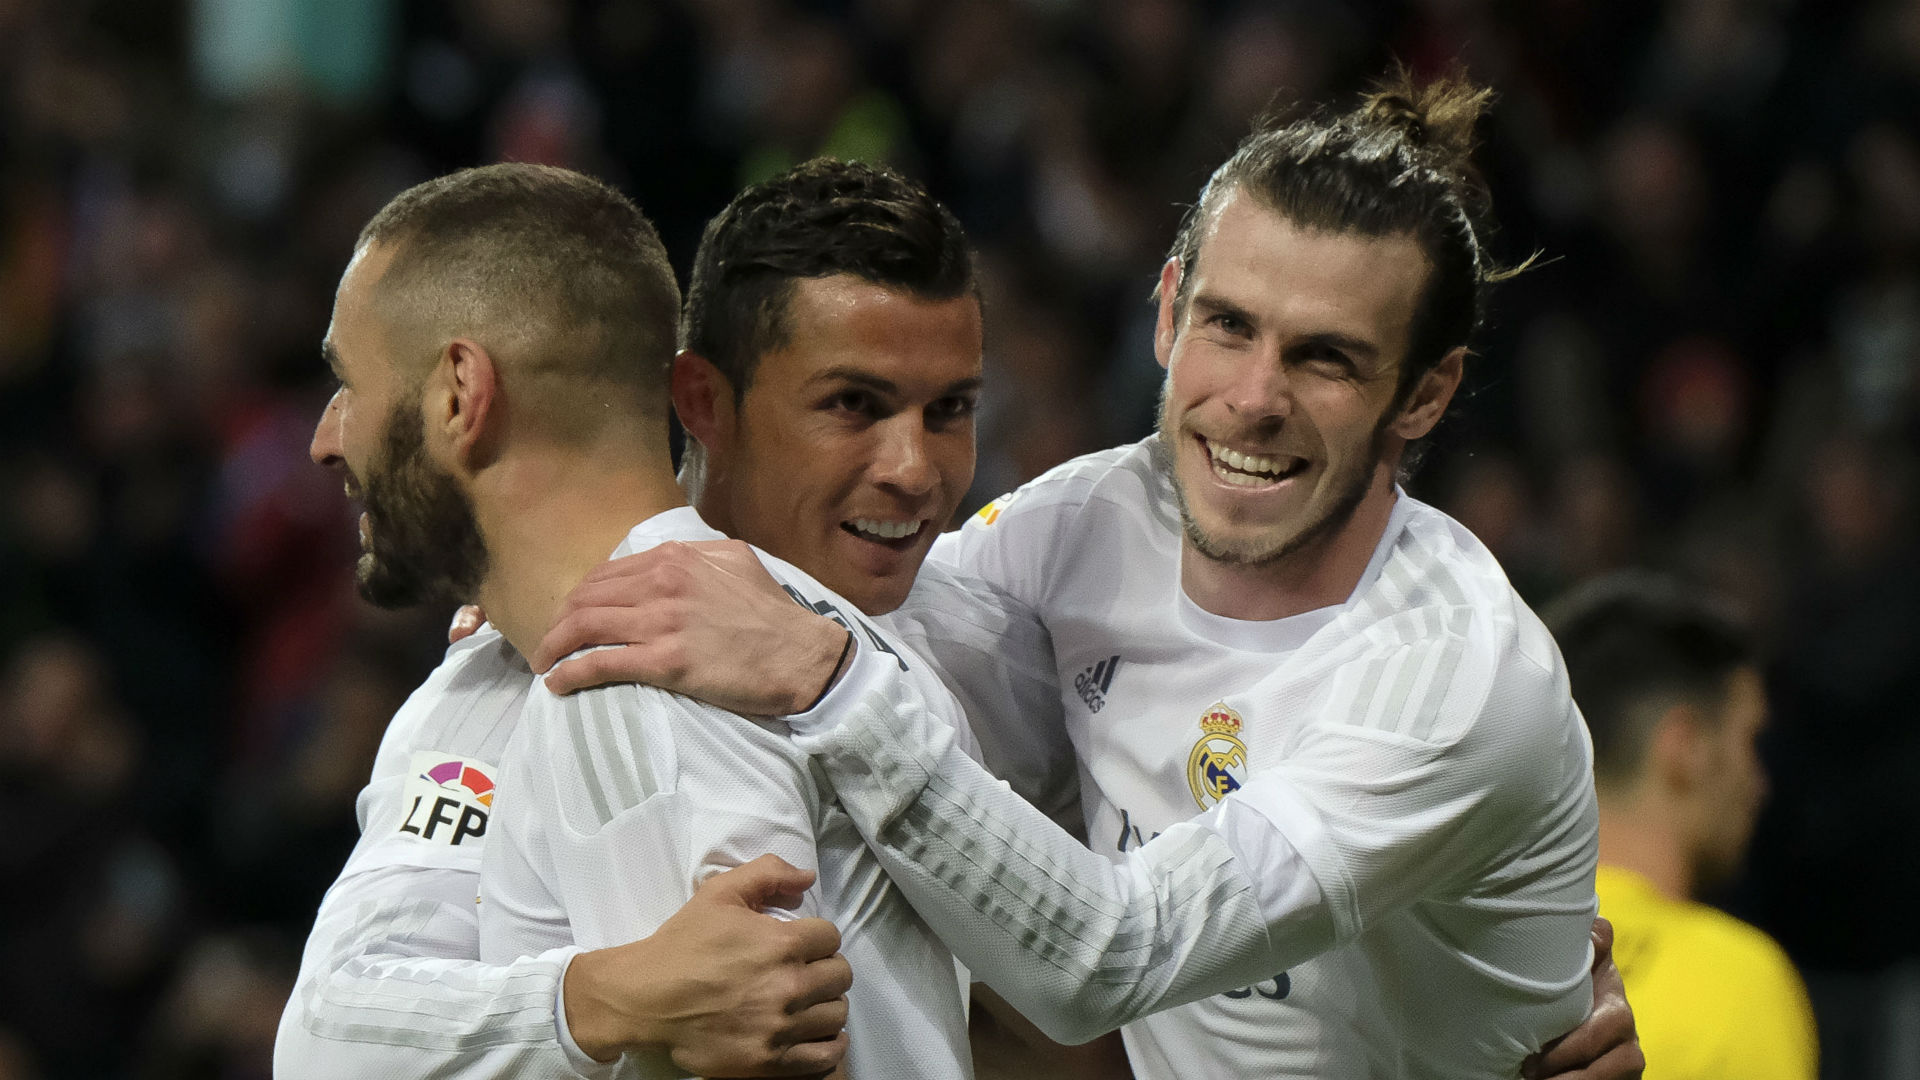 Benzema claims to have made BBC partnership with Ronaldo & Bale 'work'